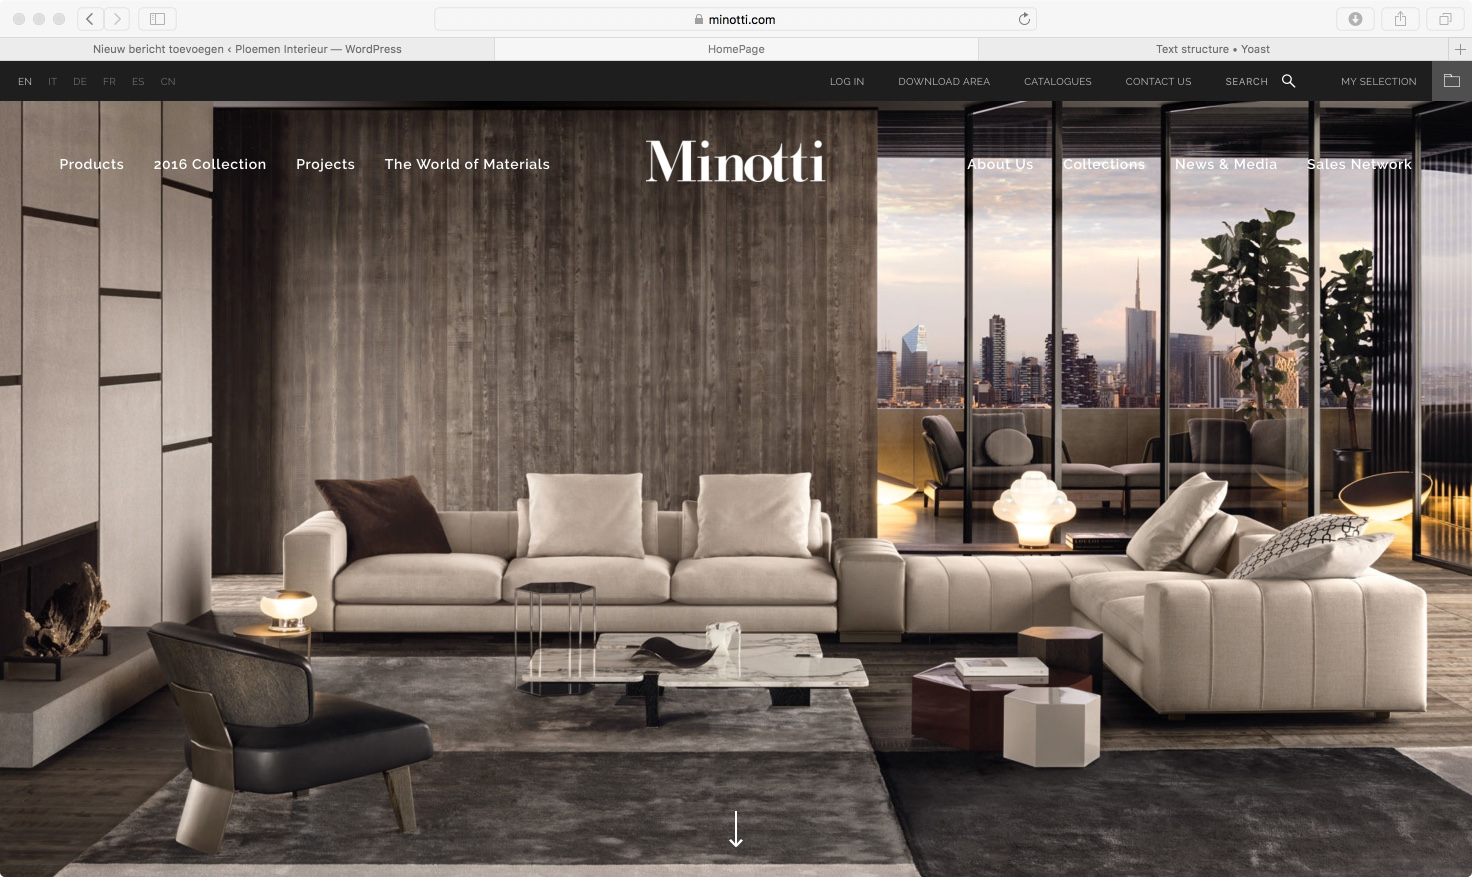 minotti website